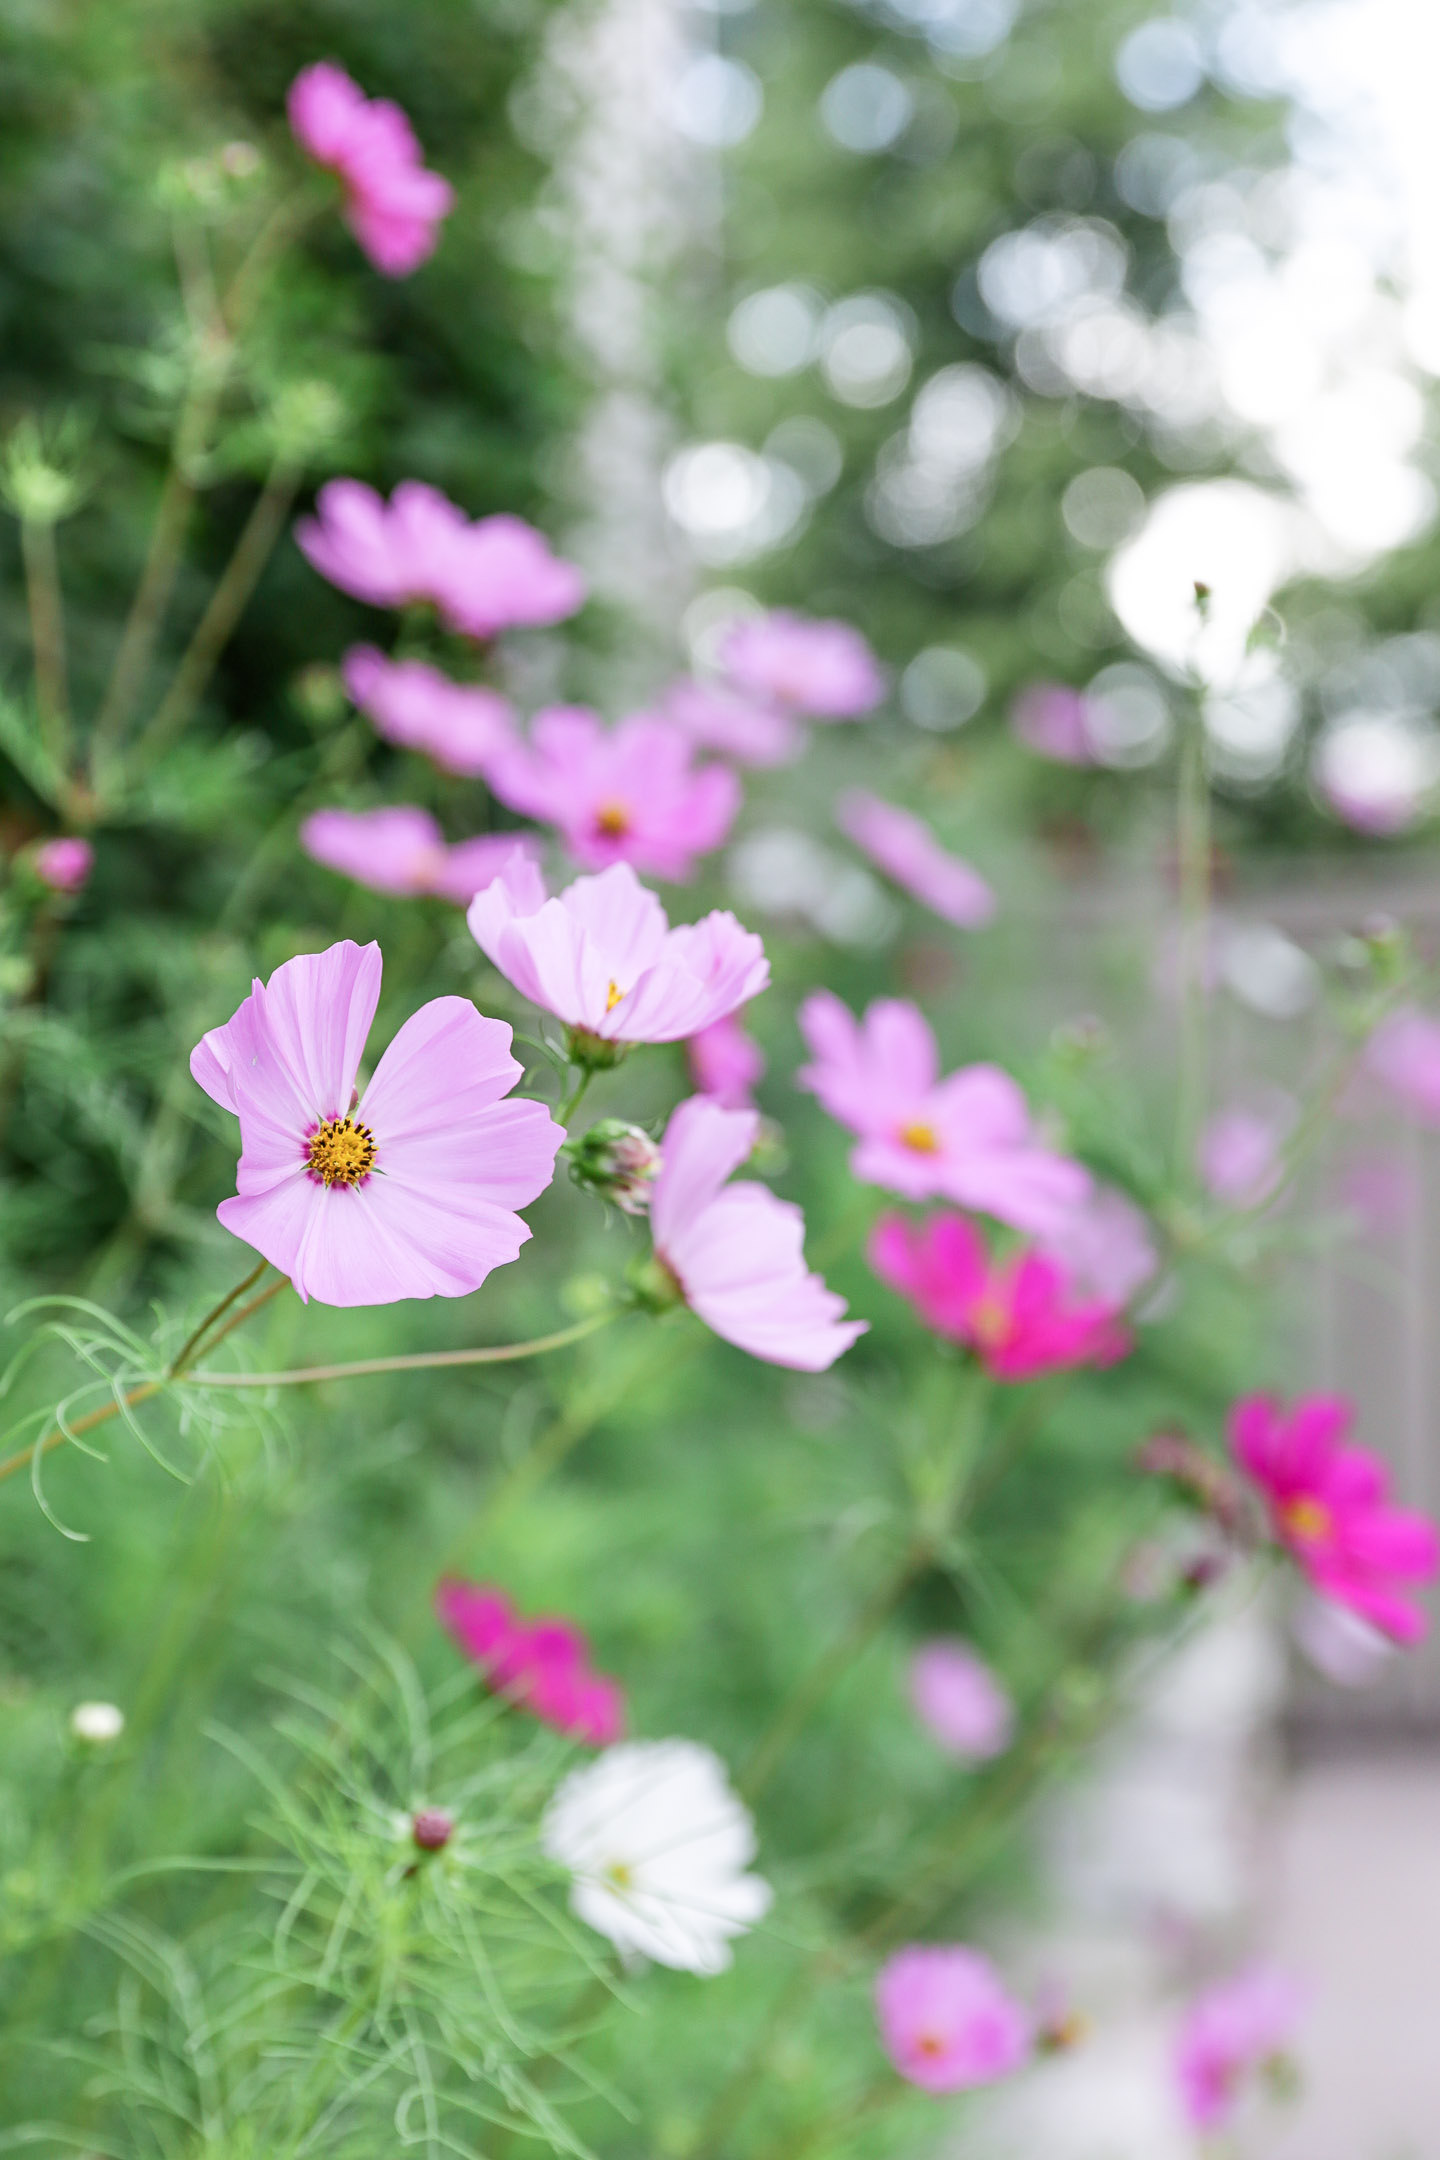 Cosmos in the garden